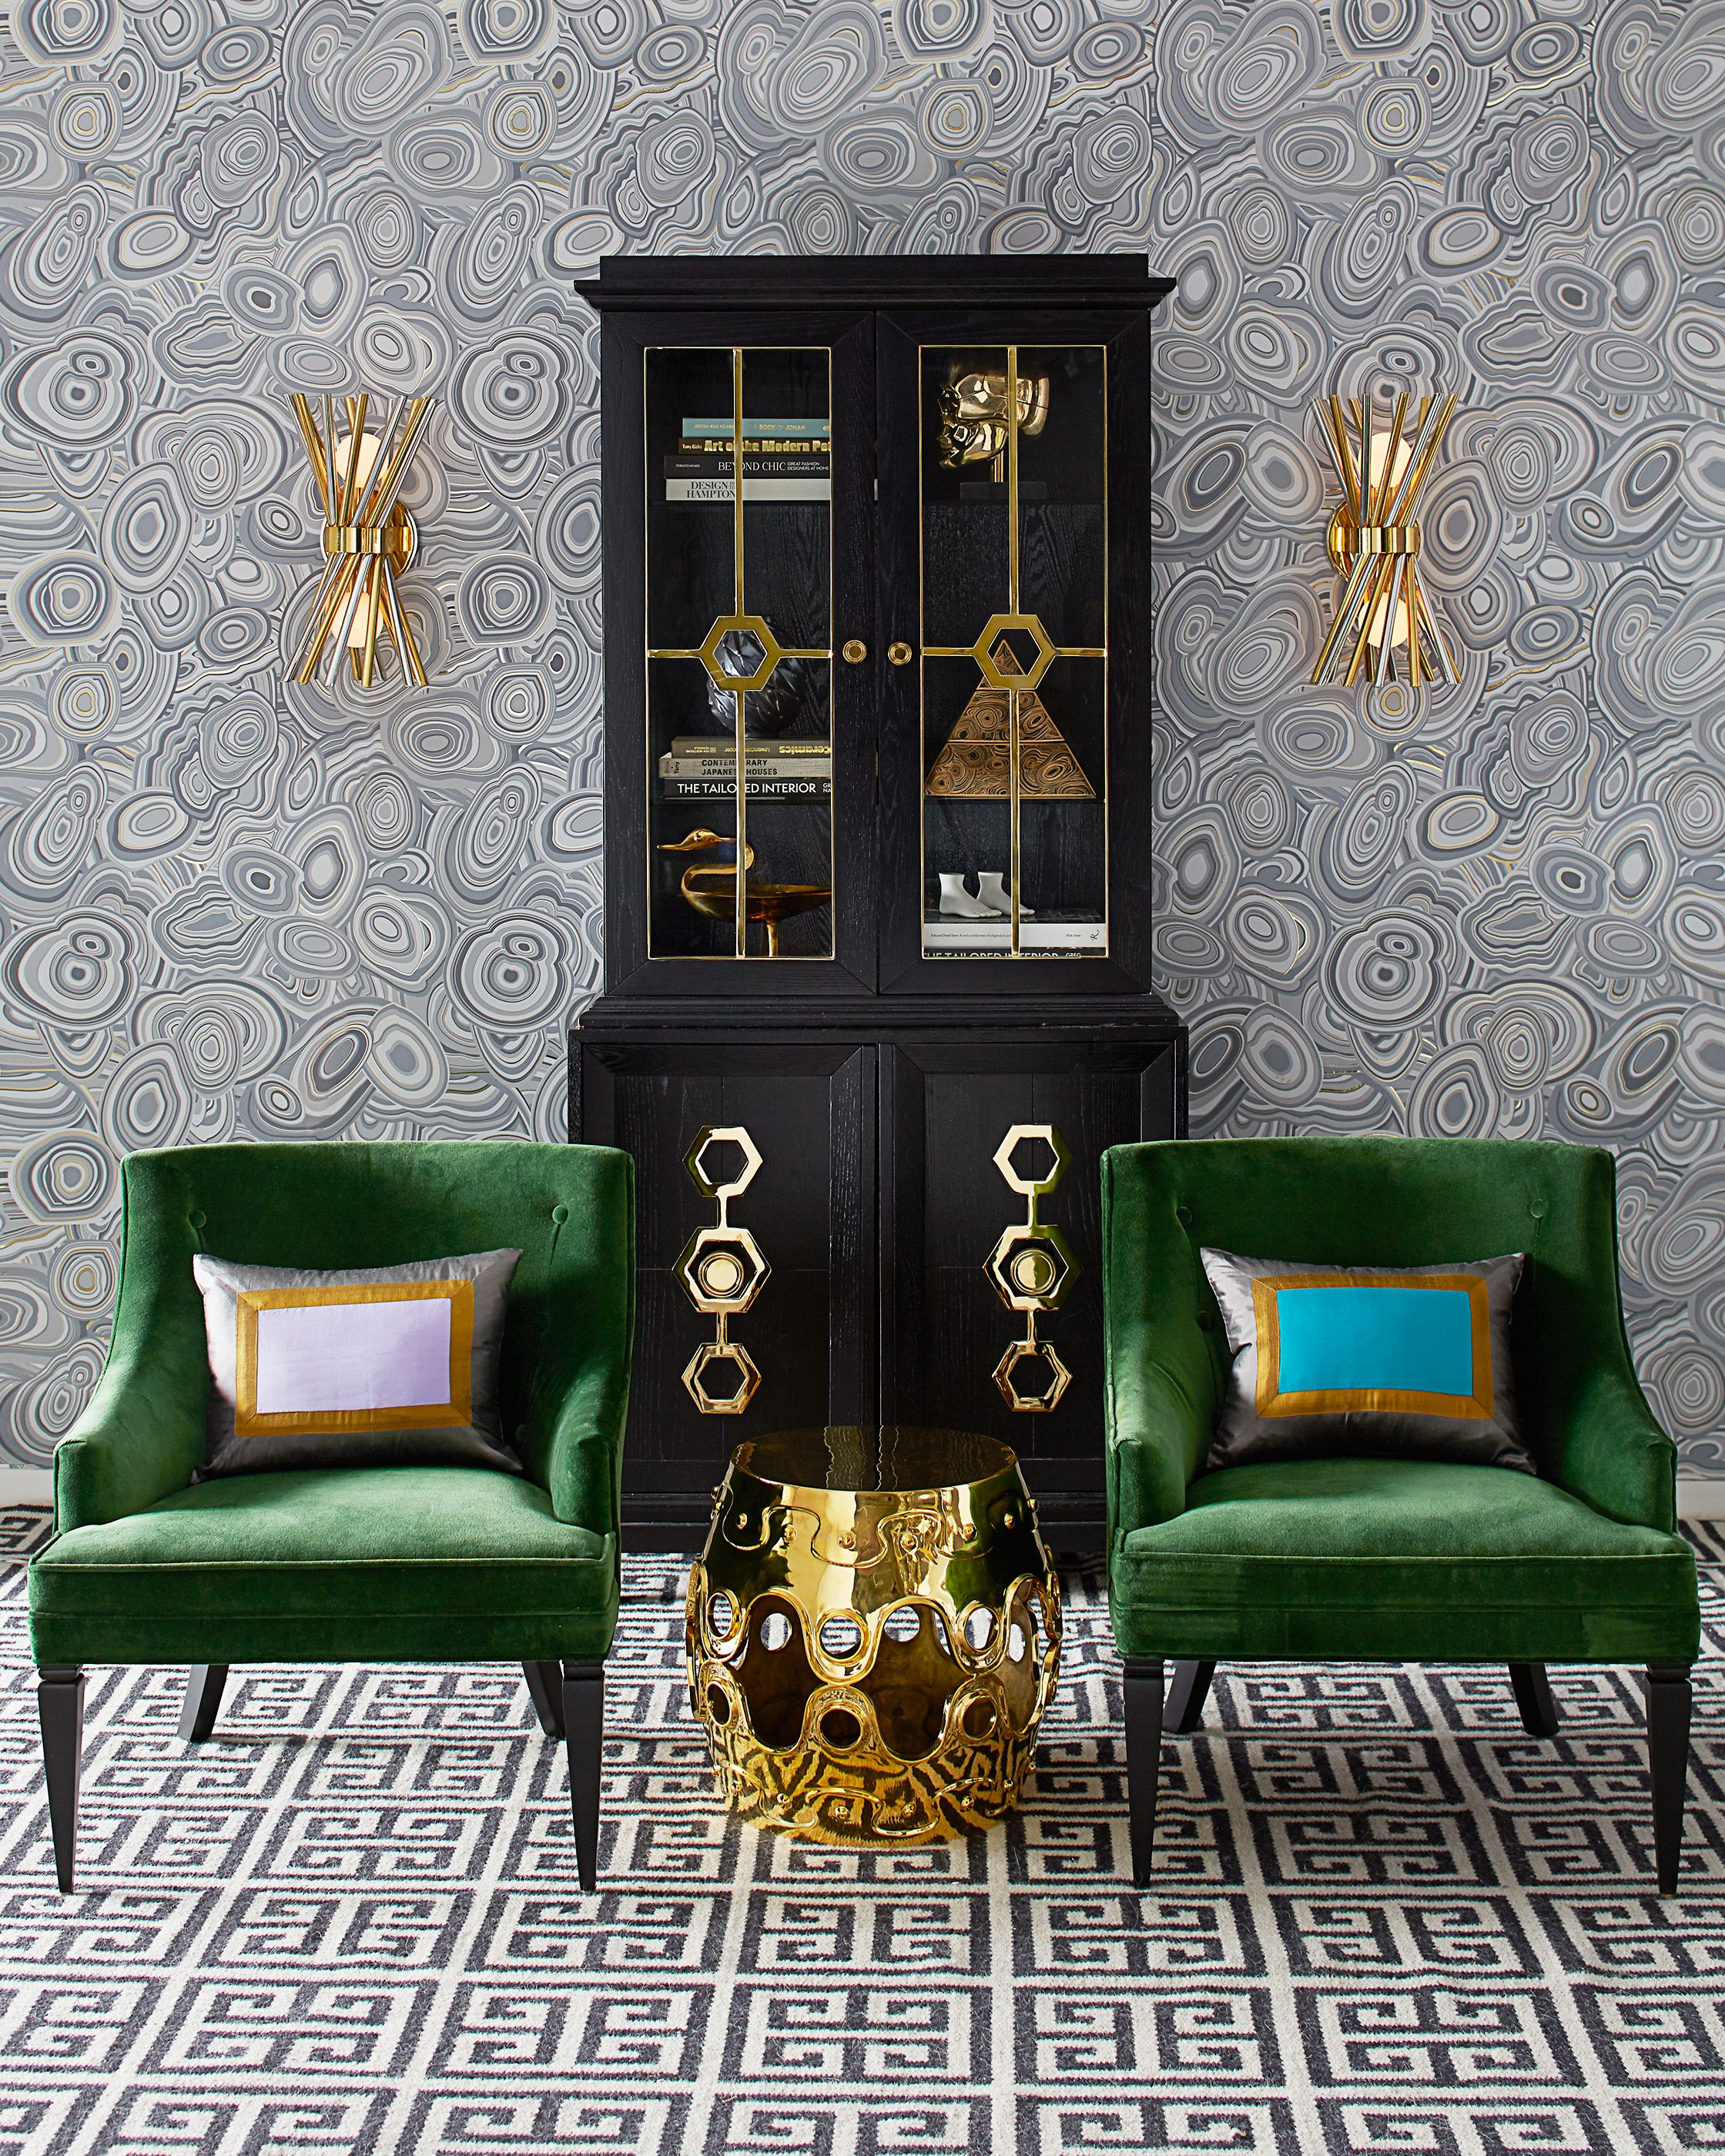 Keys to view more living rooms - View More Jonathan Adler Furniture Lighting And Decorative Accessories That